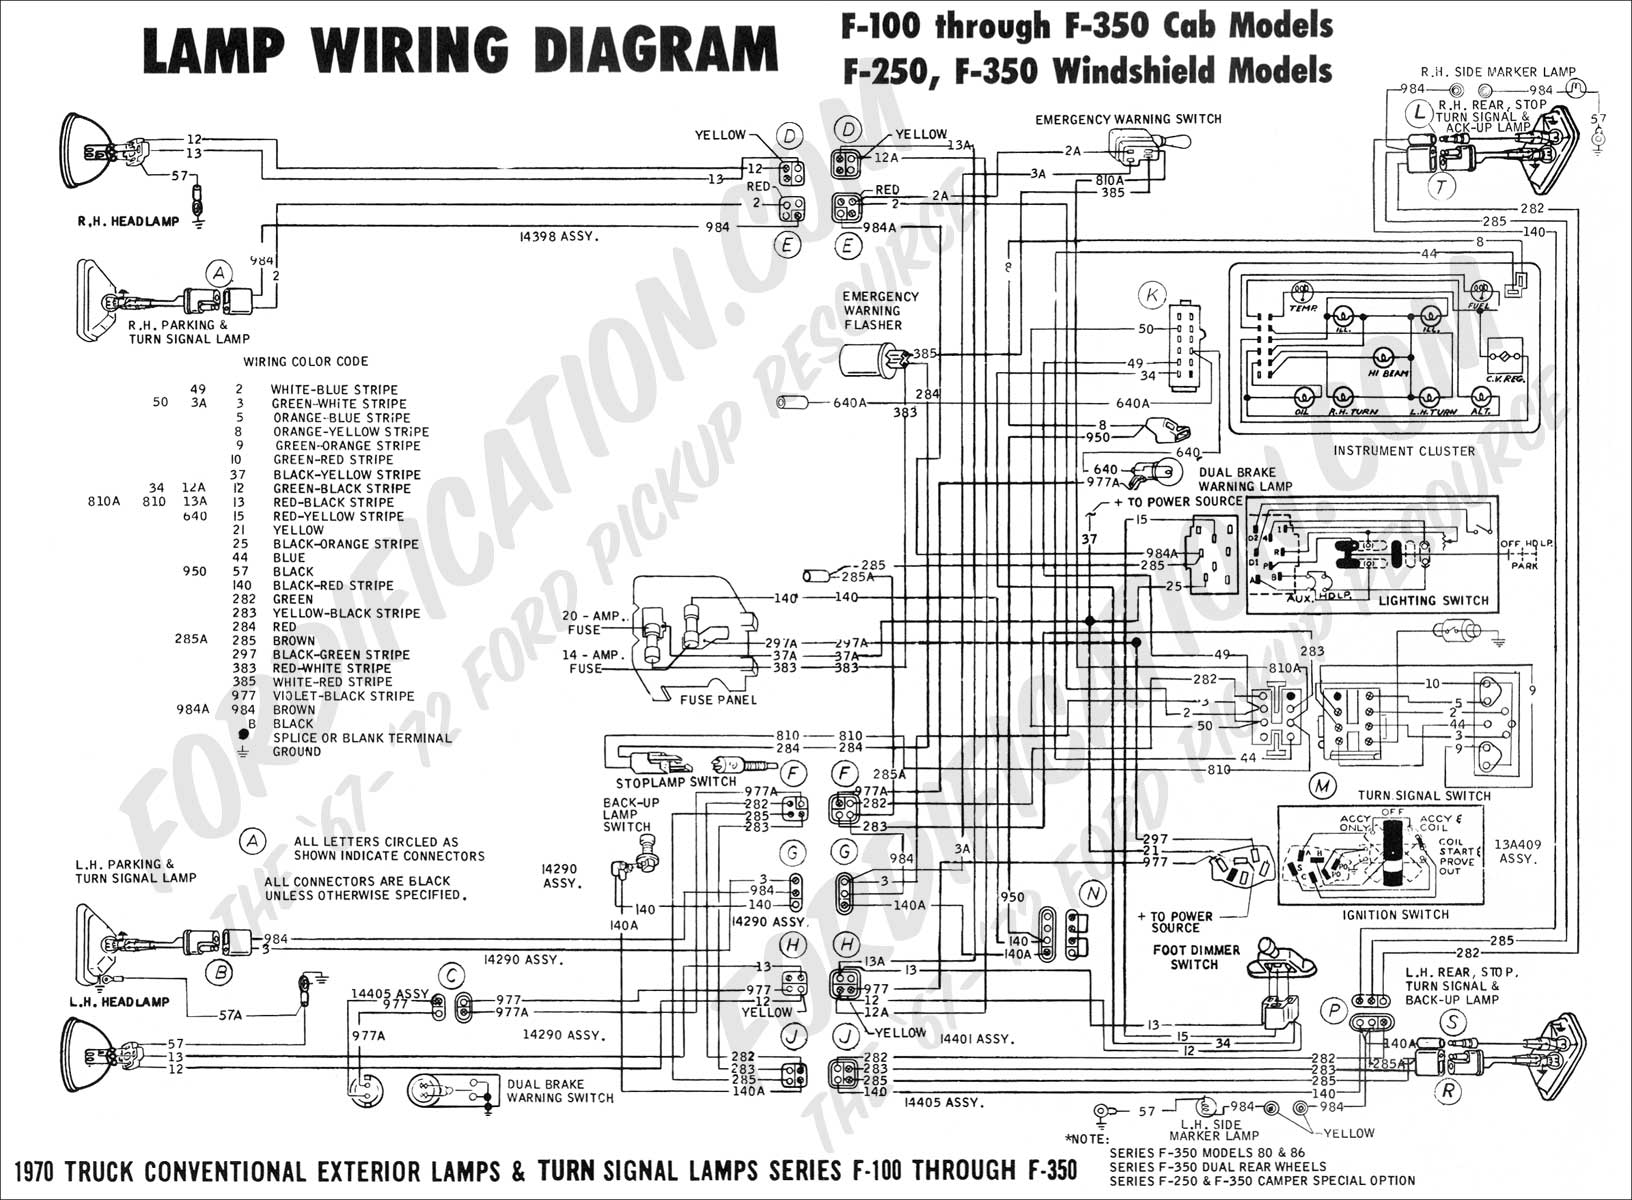 1988 ford f 250 wiring diagram lights wiring diagrams 2003 Chevy Malibu Tail Light Wiring Diagram ford f250 wiring diagram wiring diagrams 2008 ford f 250 wiring schematic 1988 ford f 250 wiring diagram lights